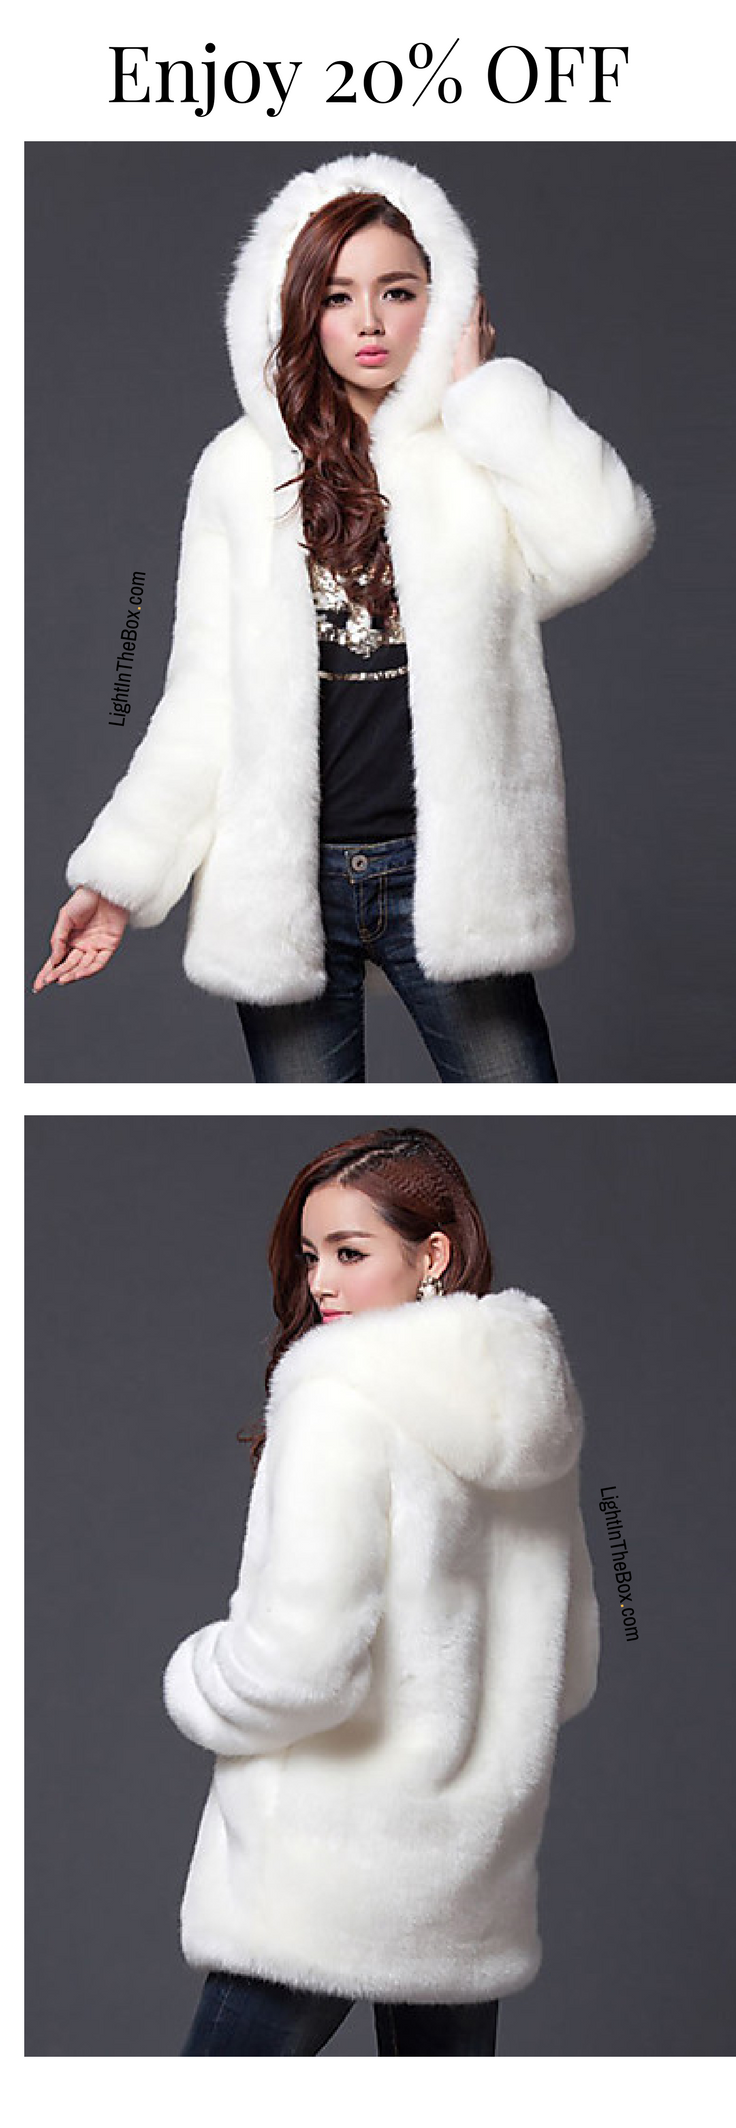 0a58649a501 What is winter without a fur coat  This is exactly what every woman needs -  a sexy chic faux fur hoodie coat in white and black colours at just €31.80.